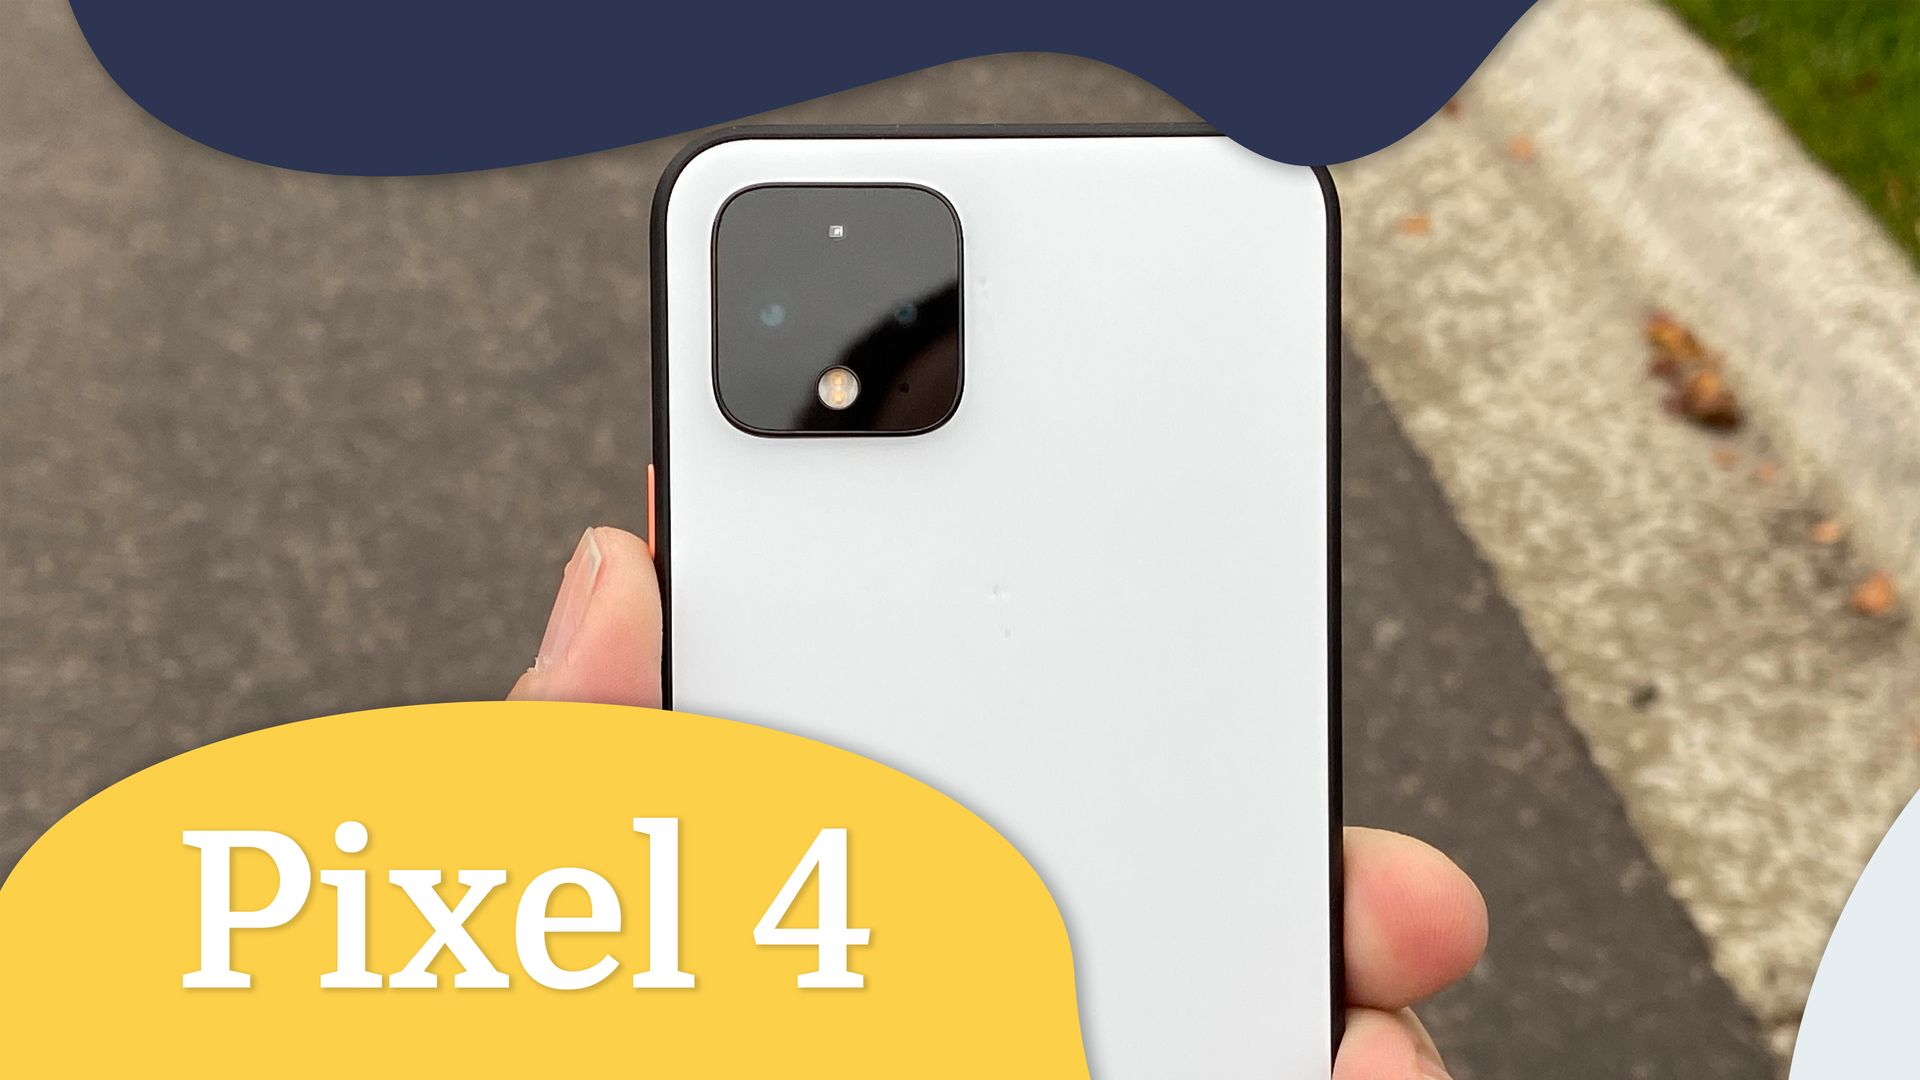 Google Pixel 4: The BirchTree Review